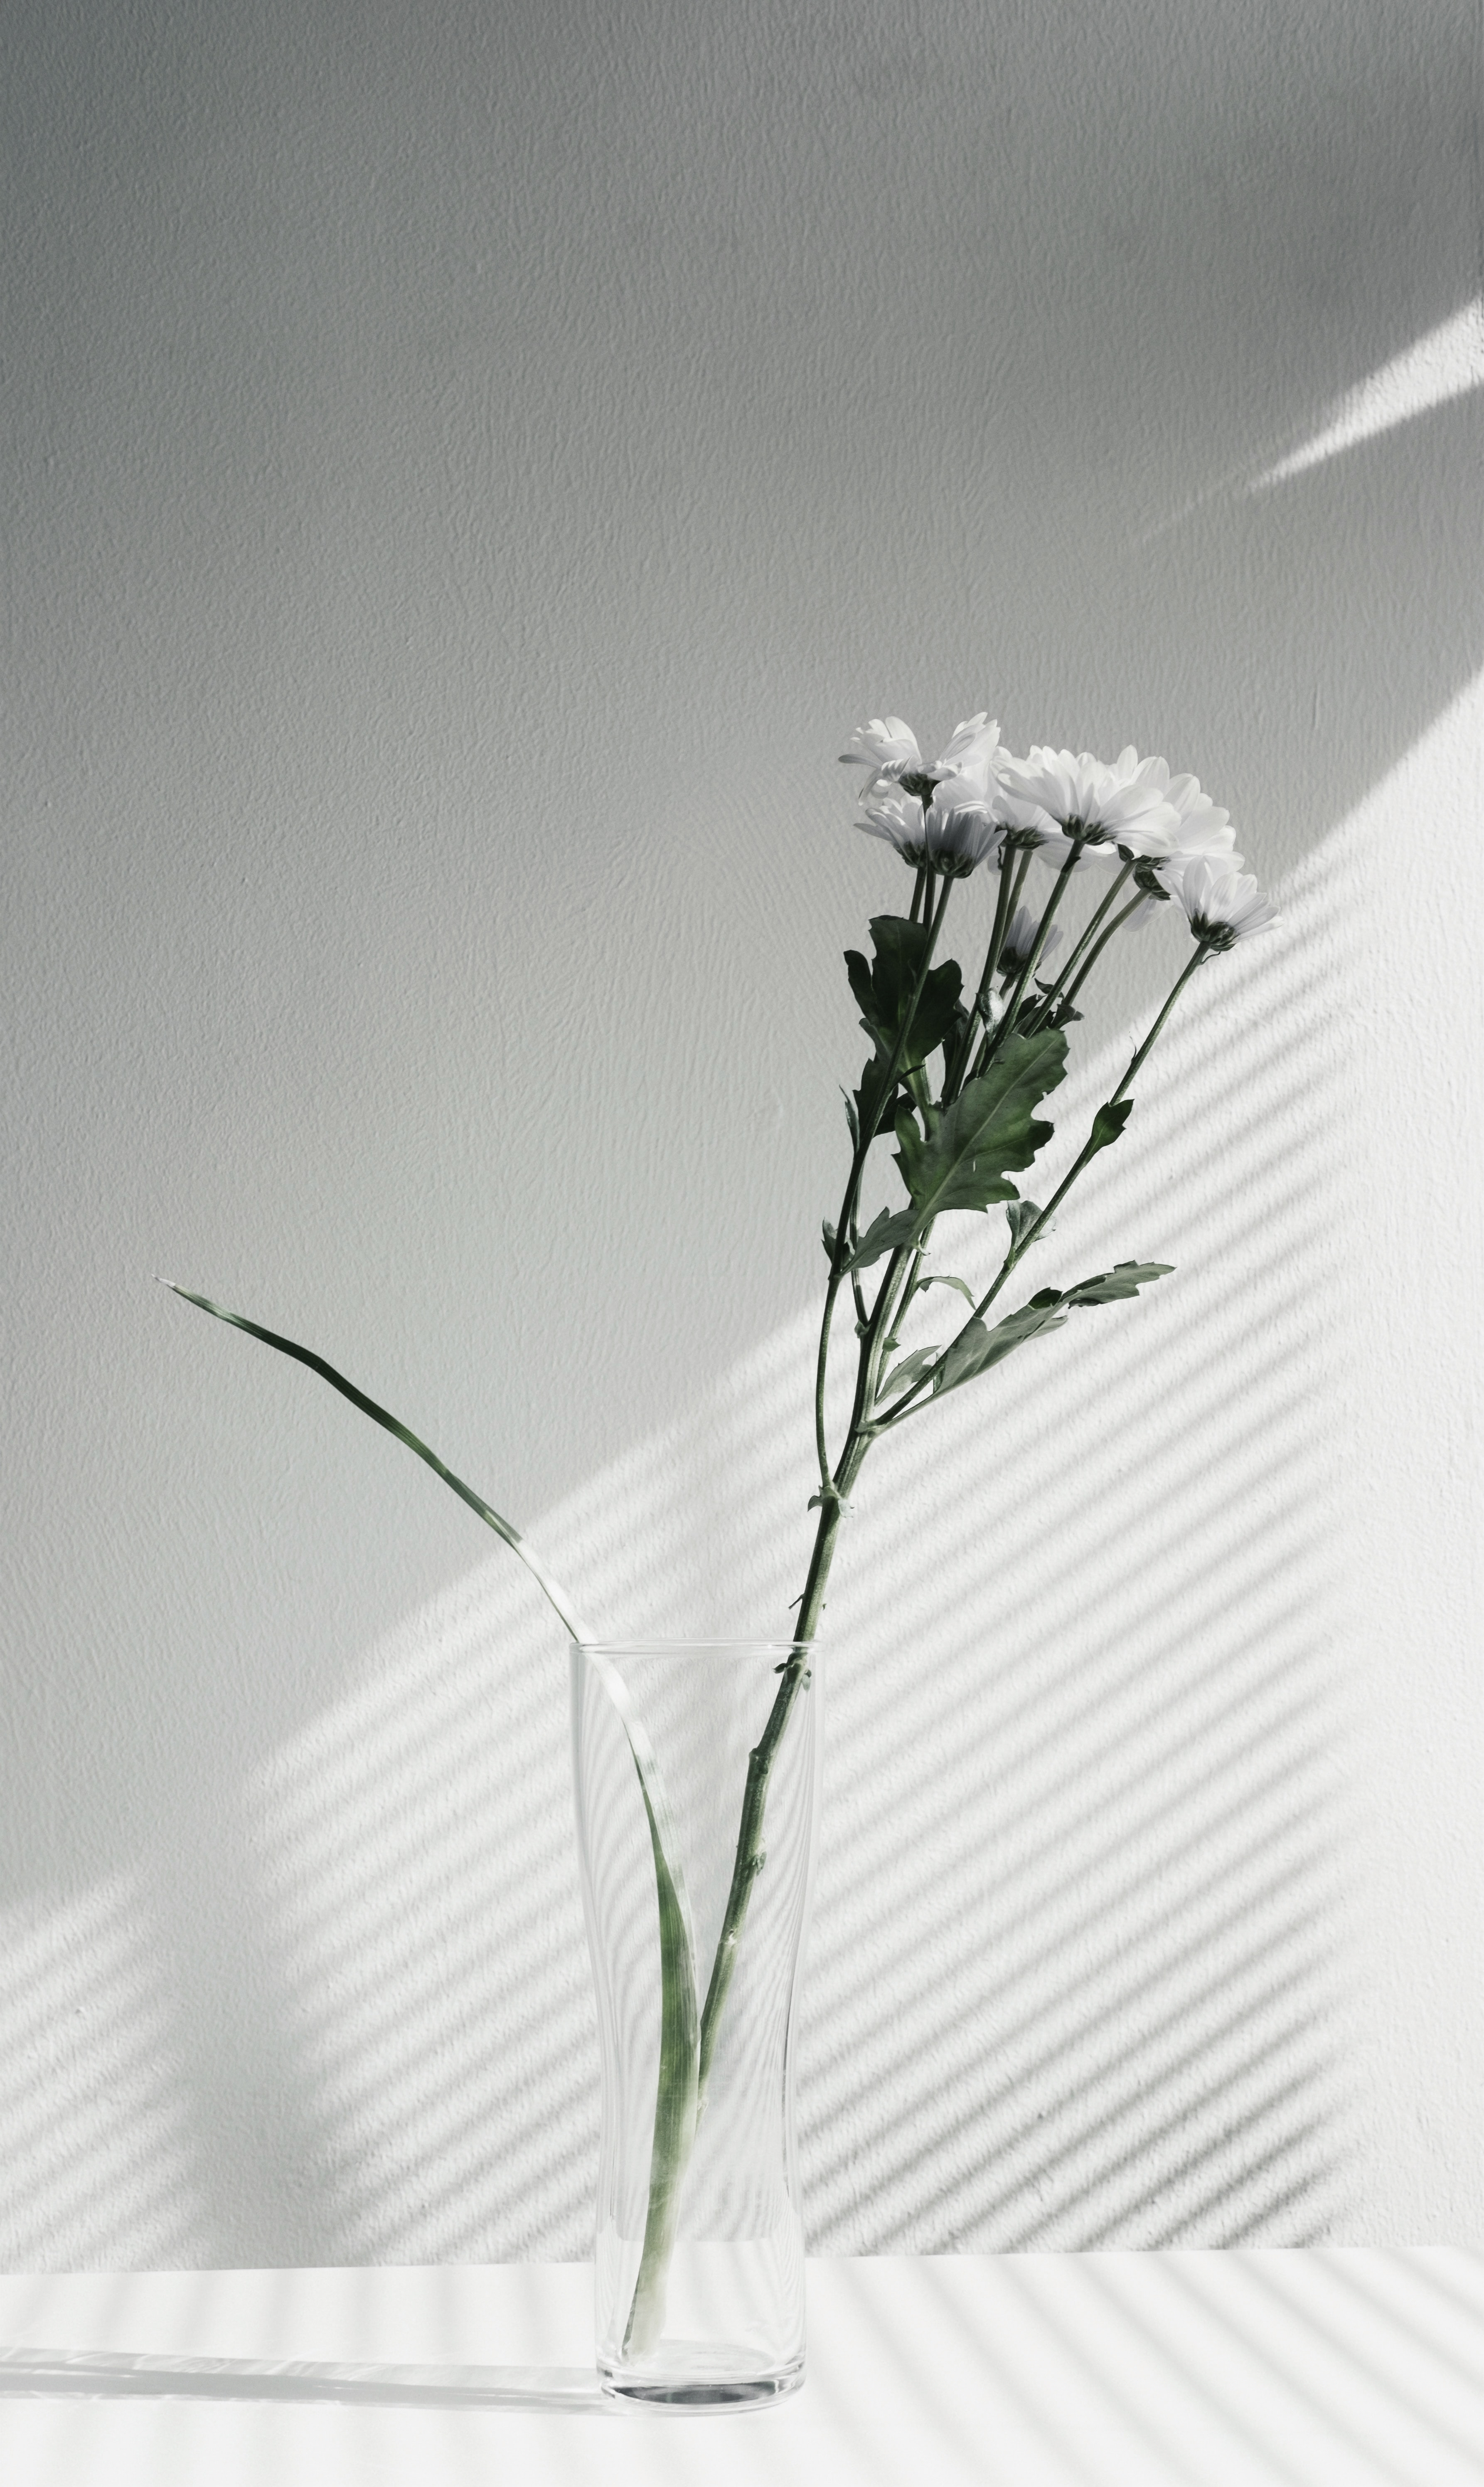 A desaturated shot of white flowers in a glass vase